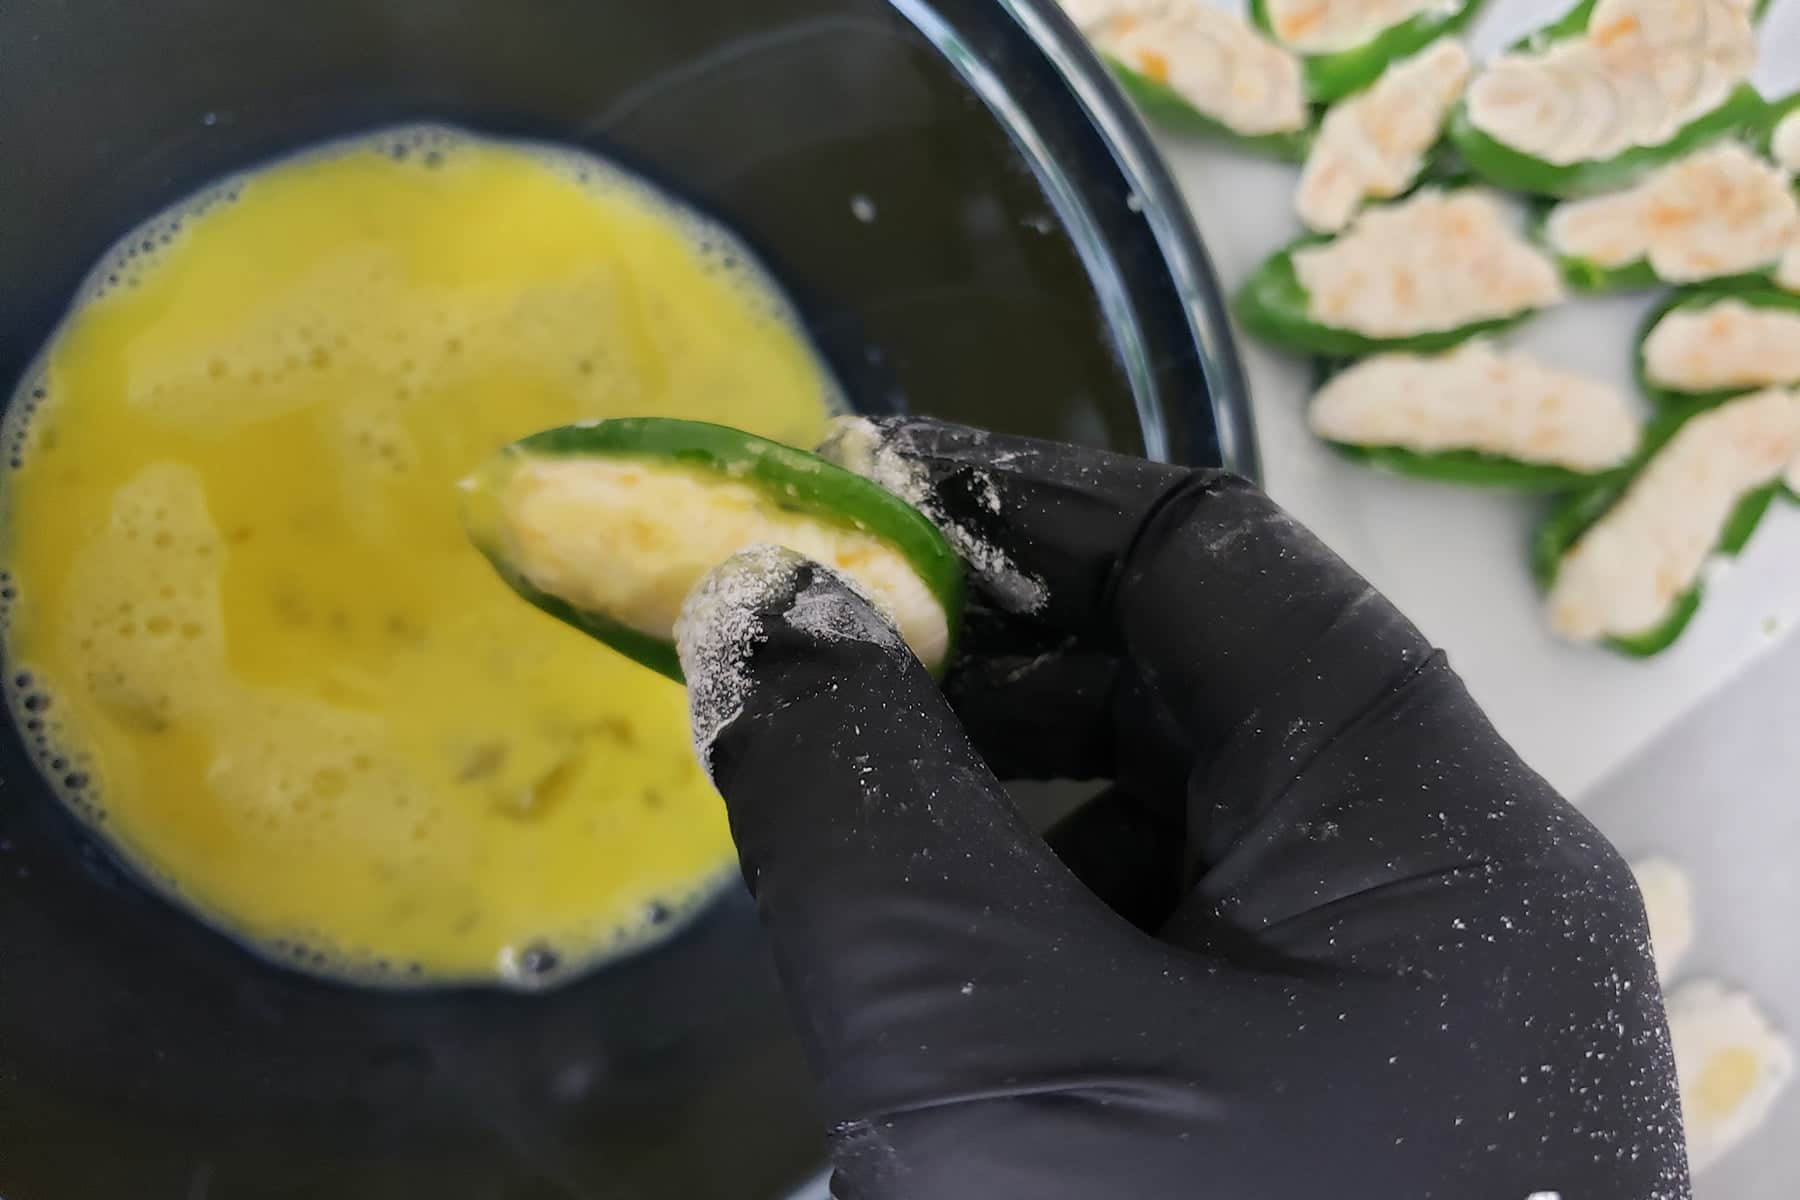 A gloved hand is shown dipping a filled jalapeno half into egg.